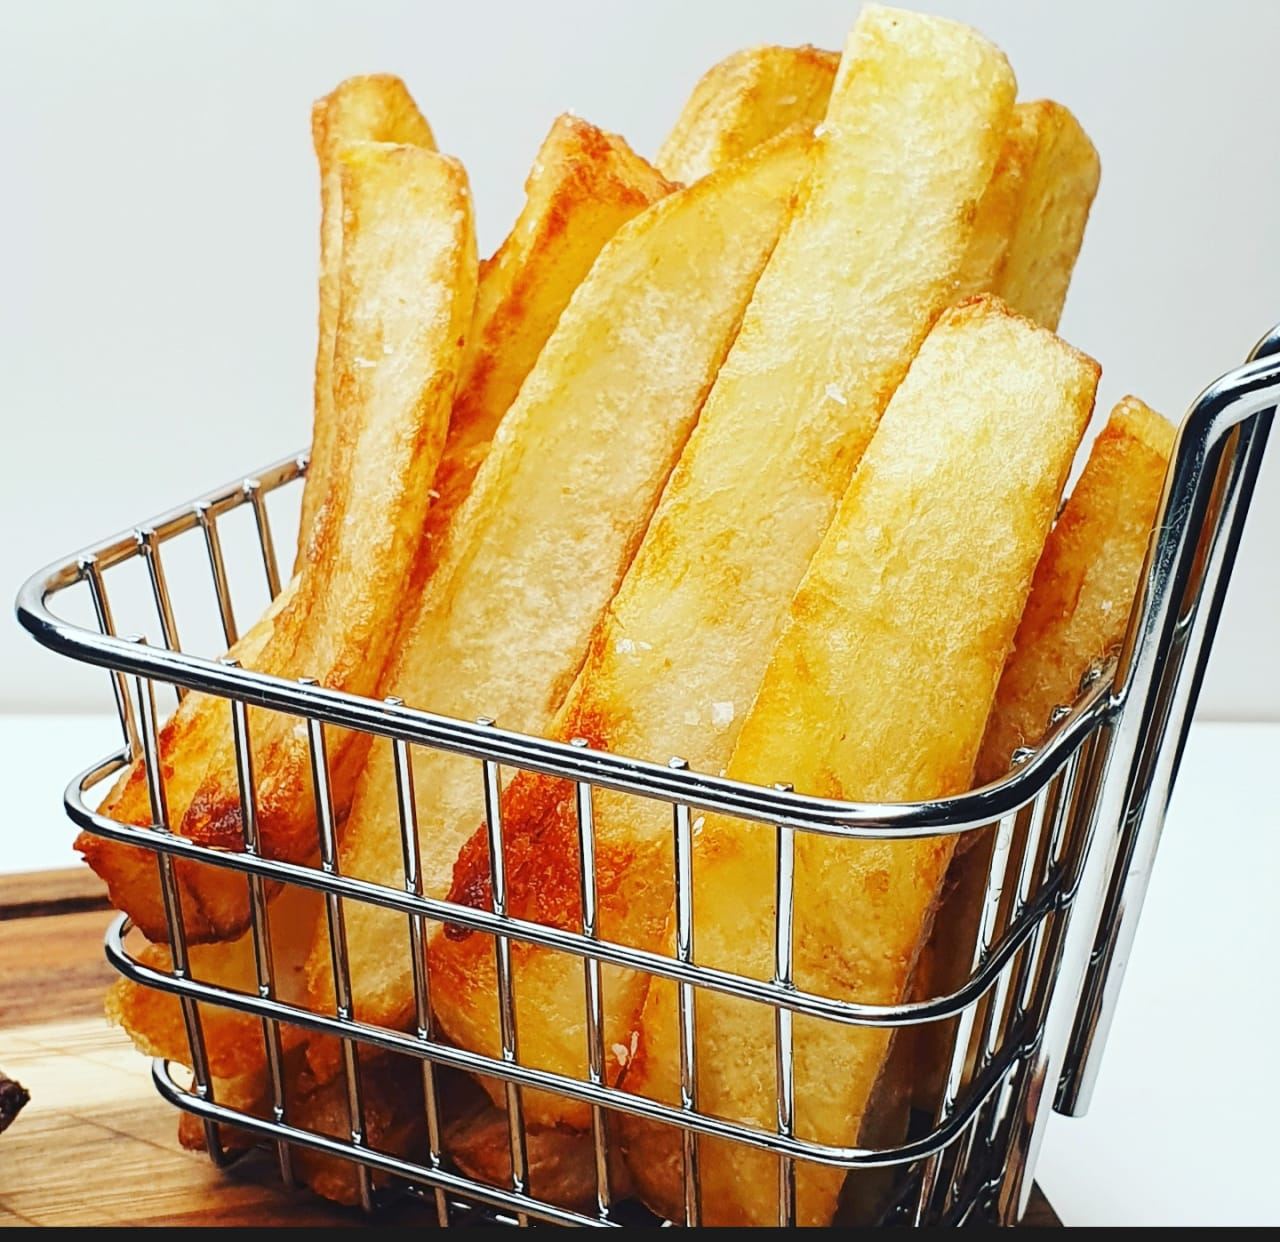 The perfect restaurant style chips